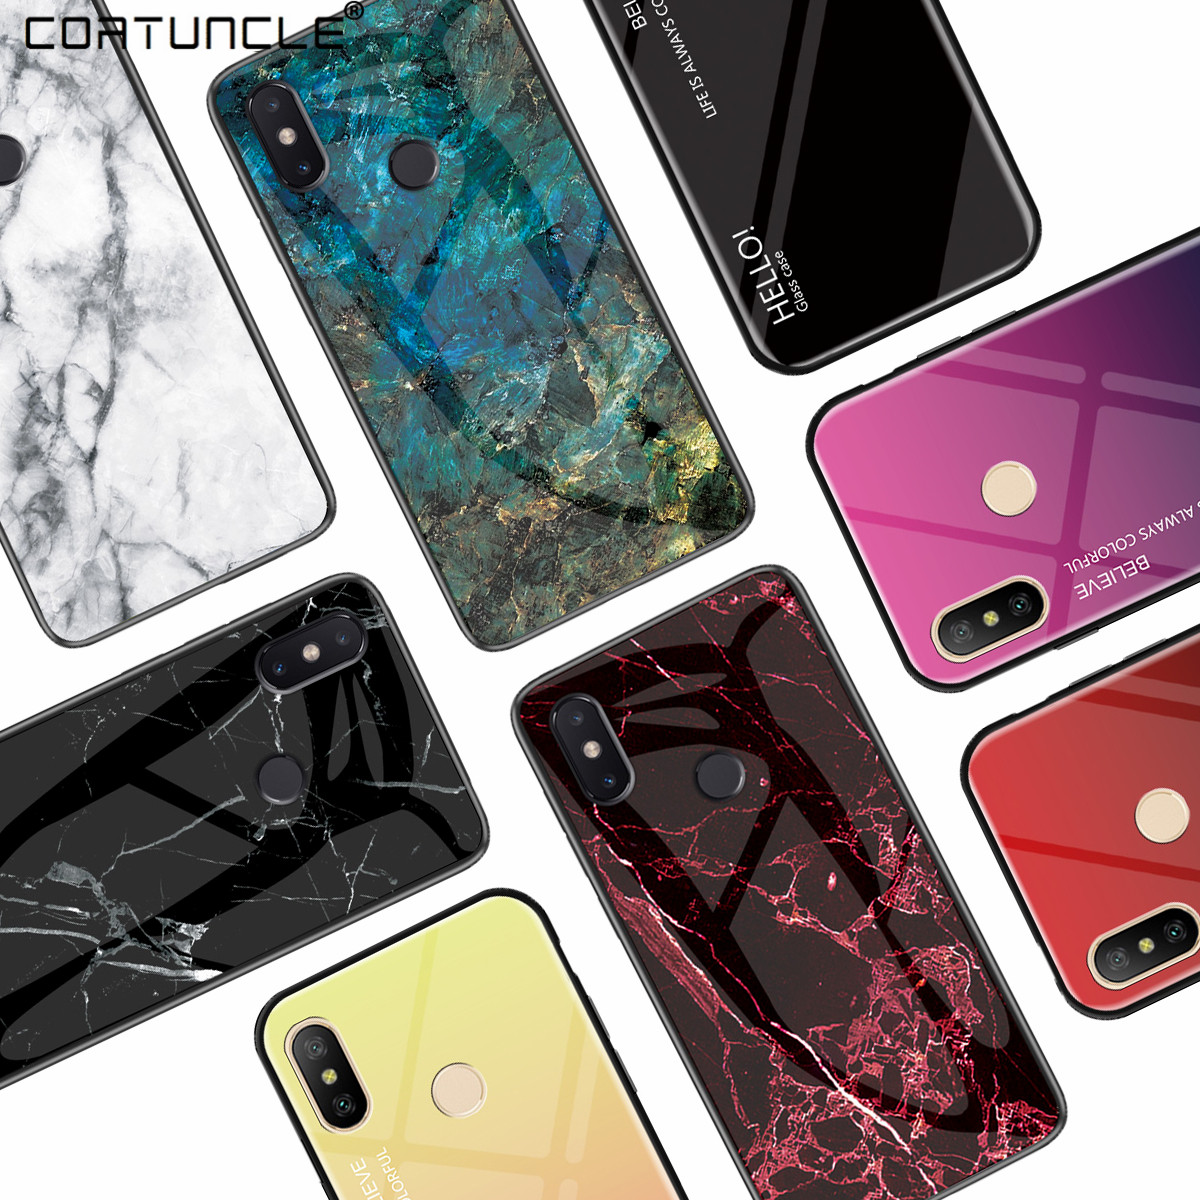 Marble Hard Tempered <font><b>Glass</b></font> For <font><b>Huawei</b></font> <font><b>P10</b></font> Lite <font><b>Case</b></font> Luxury Gradient Protective Back Cover <font><b>Huawei</b></font> <font><b>P10</b></font> P9 Plus Phone <font><b>Case</b></font> Cover image